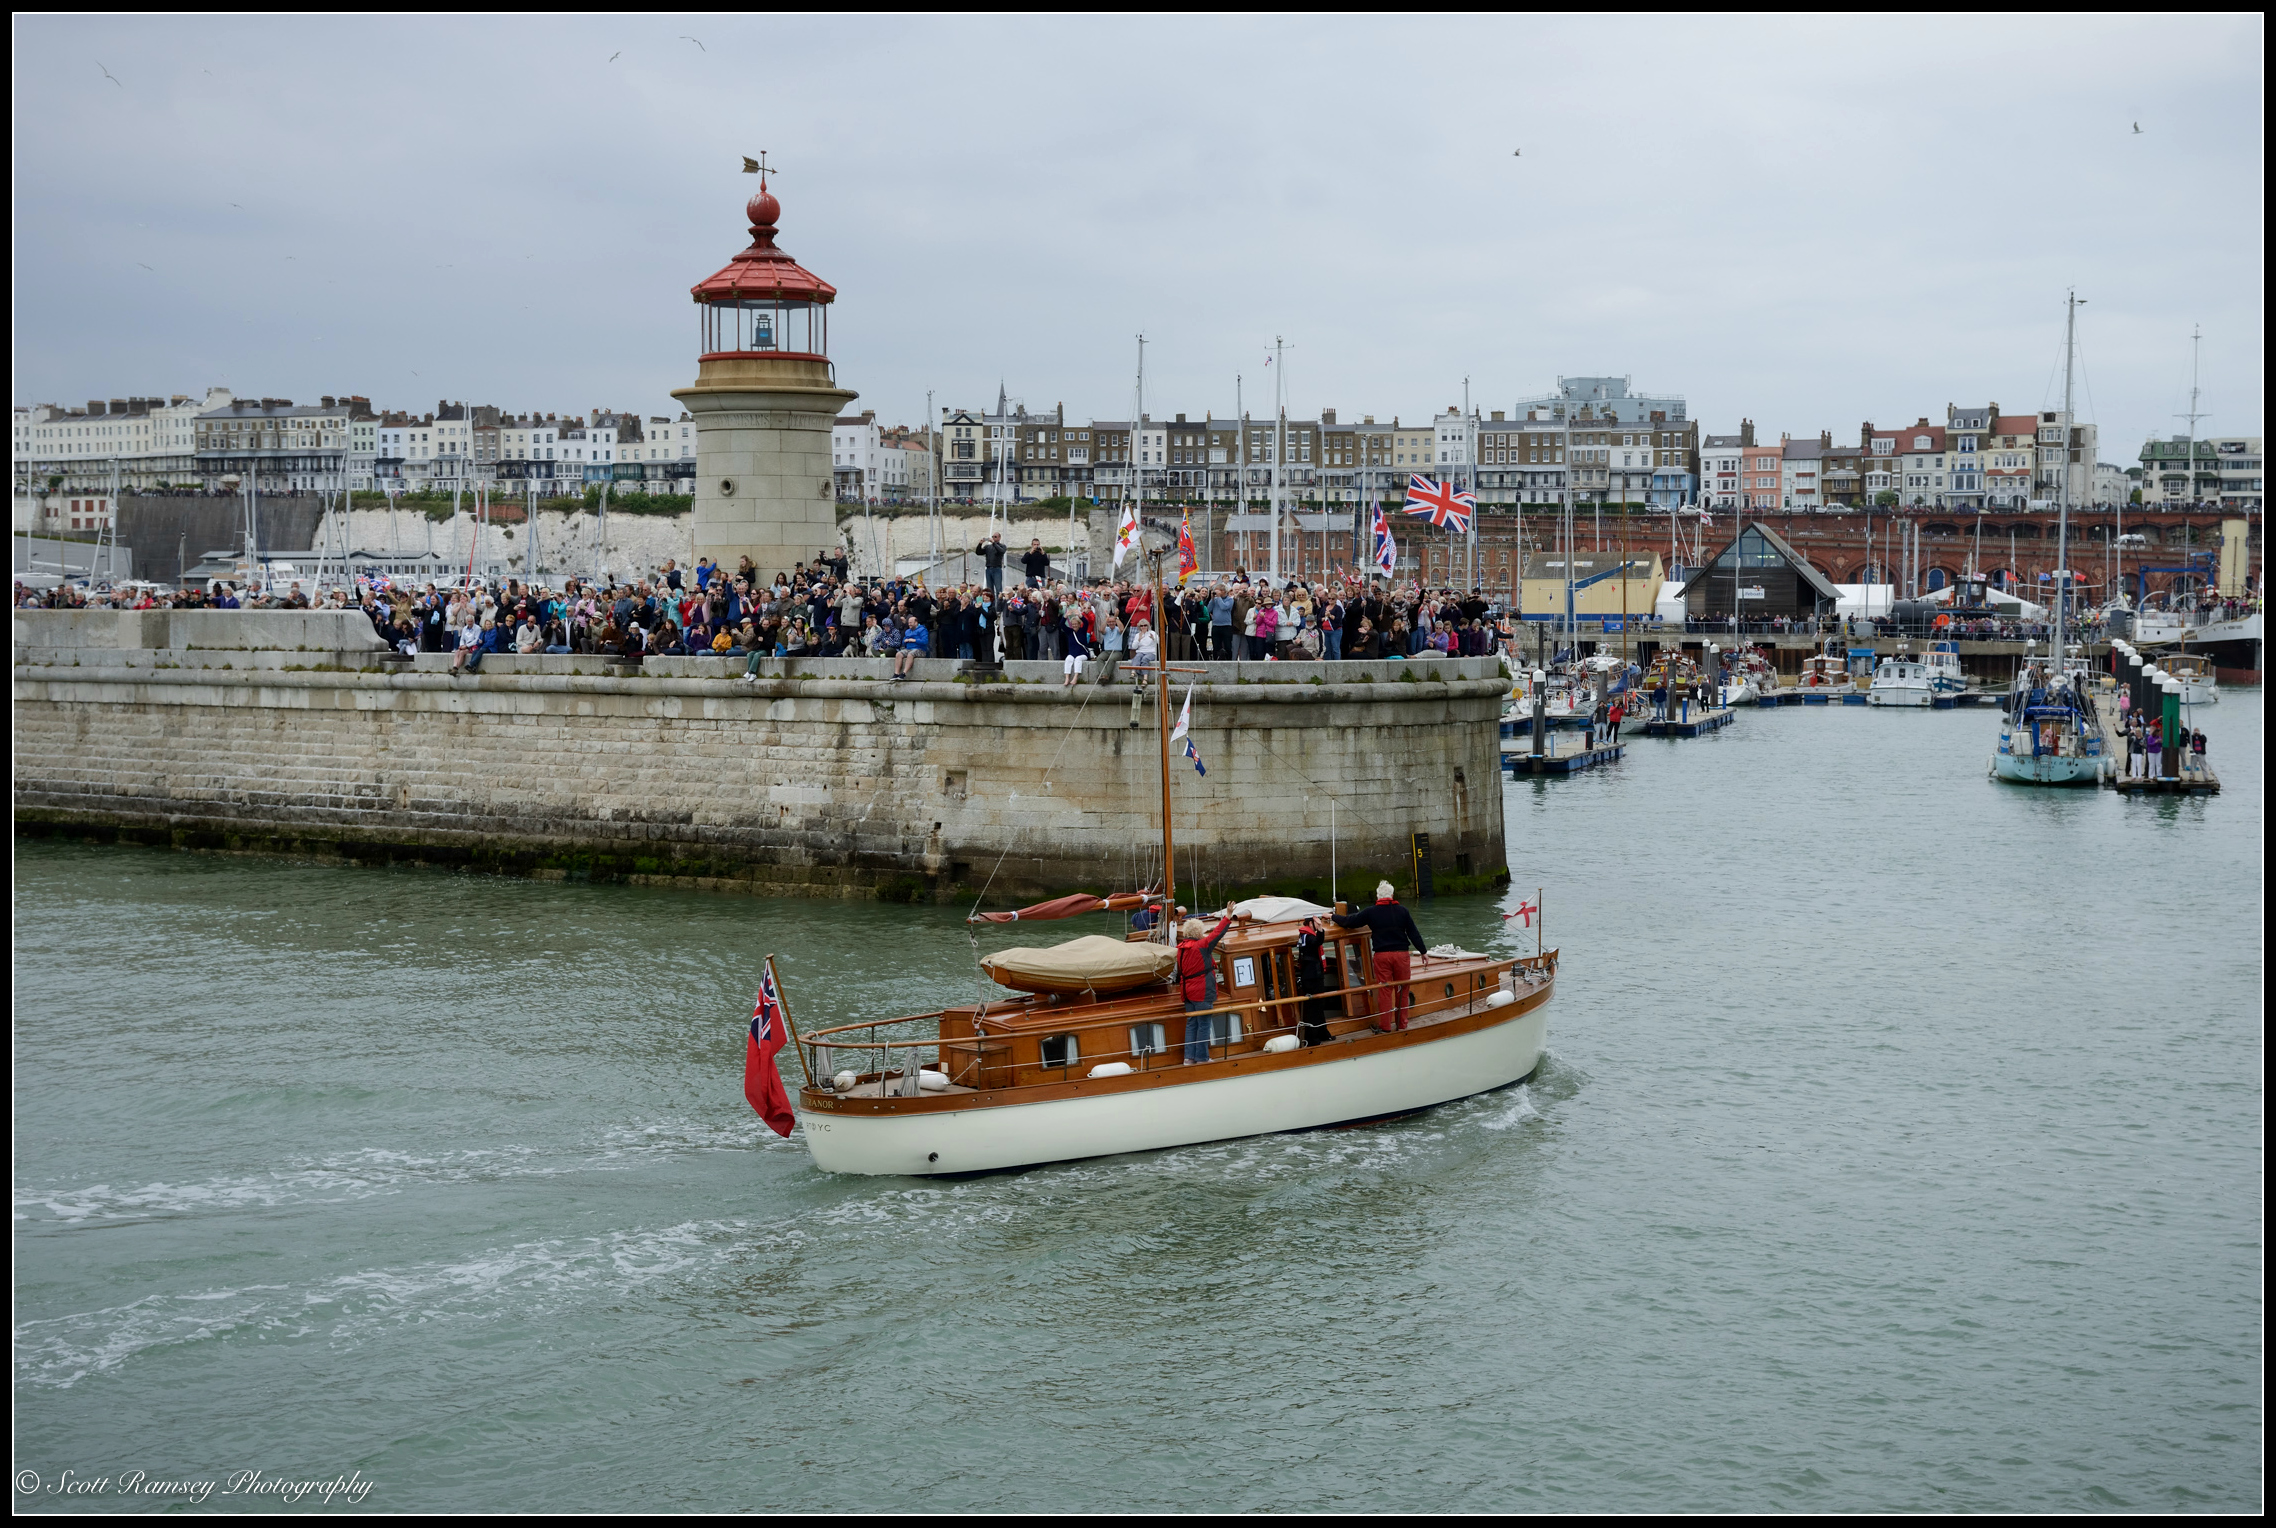 Spectators wave flags and cheer as TheHilfranor, a 1935 motor yacht and one of the original Dunkirk Little Ships, returns to the Royal Harbour Marina Ramsgate during a weekend of events to commemorate the 75th anniversary of Operation Dynamo. ©Scott Ramsey Photography